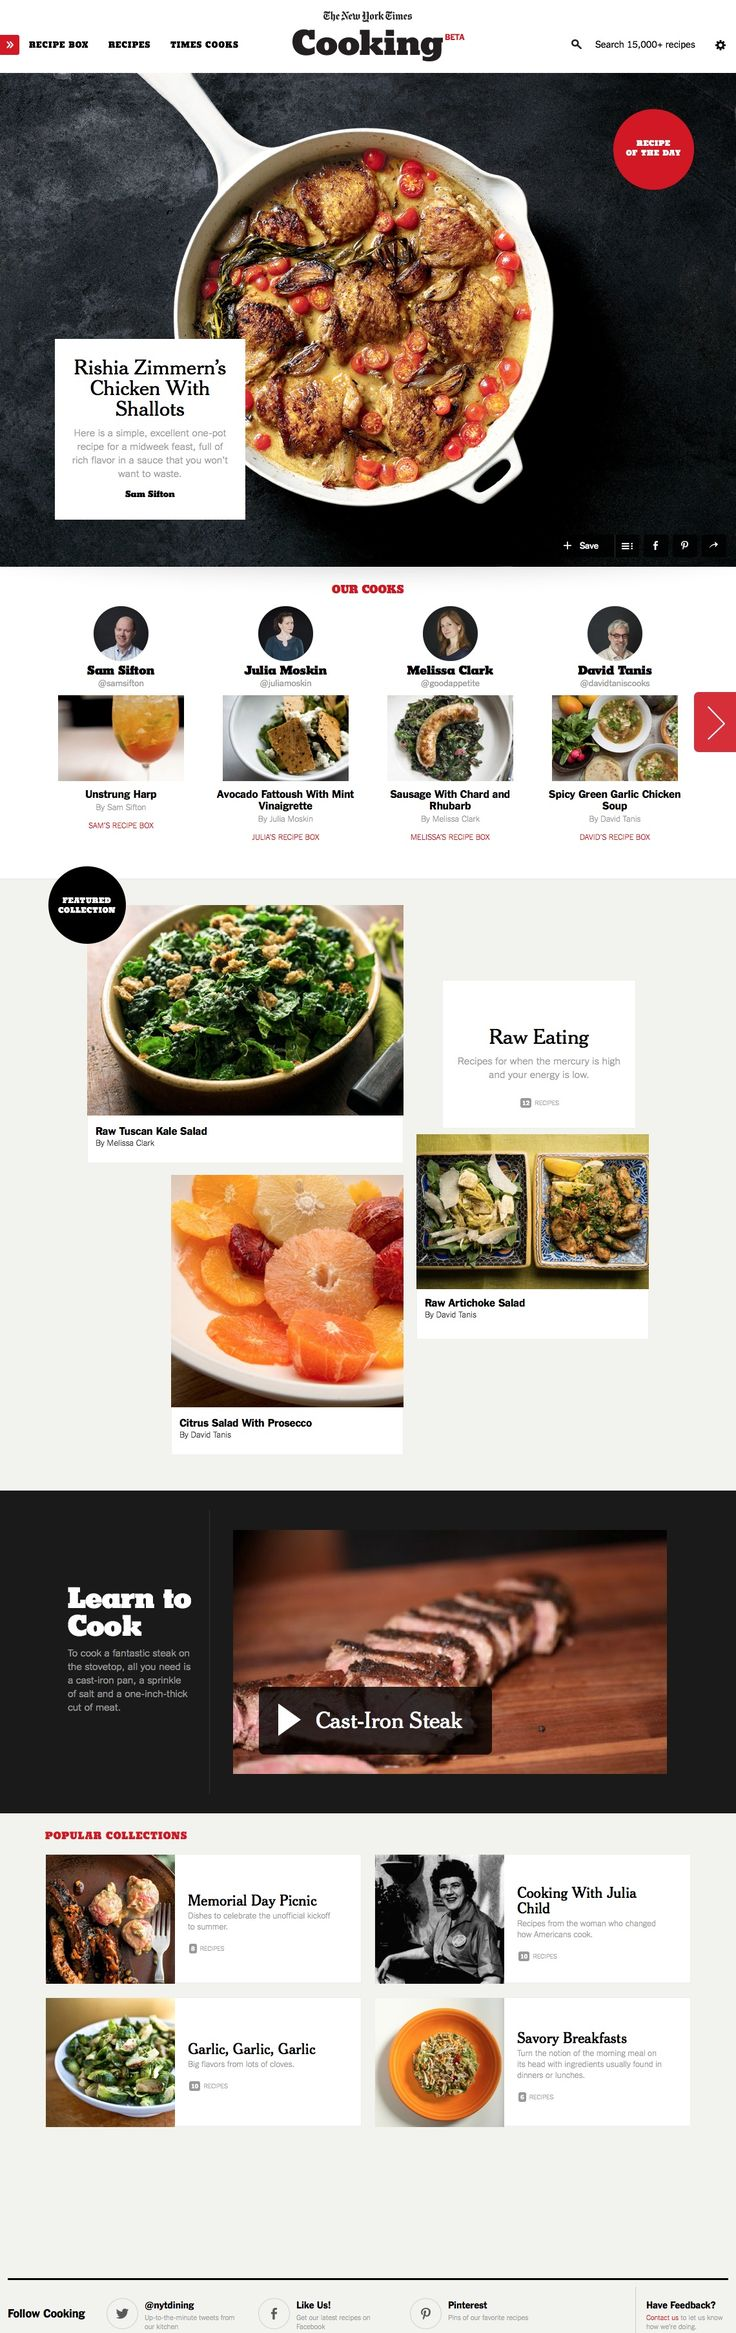 New York Times Cooking Website Design #webdesign #website #design